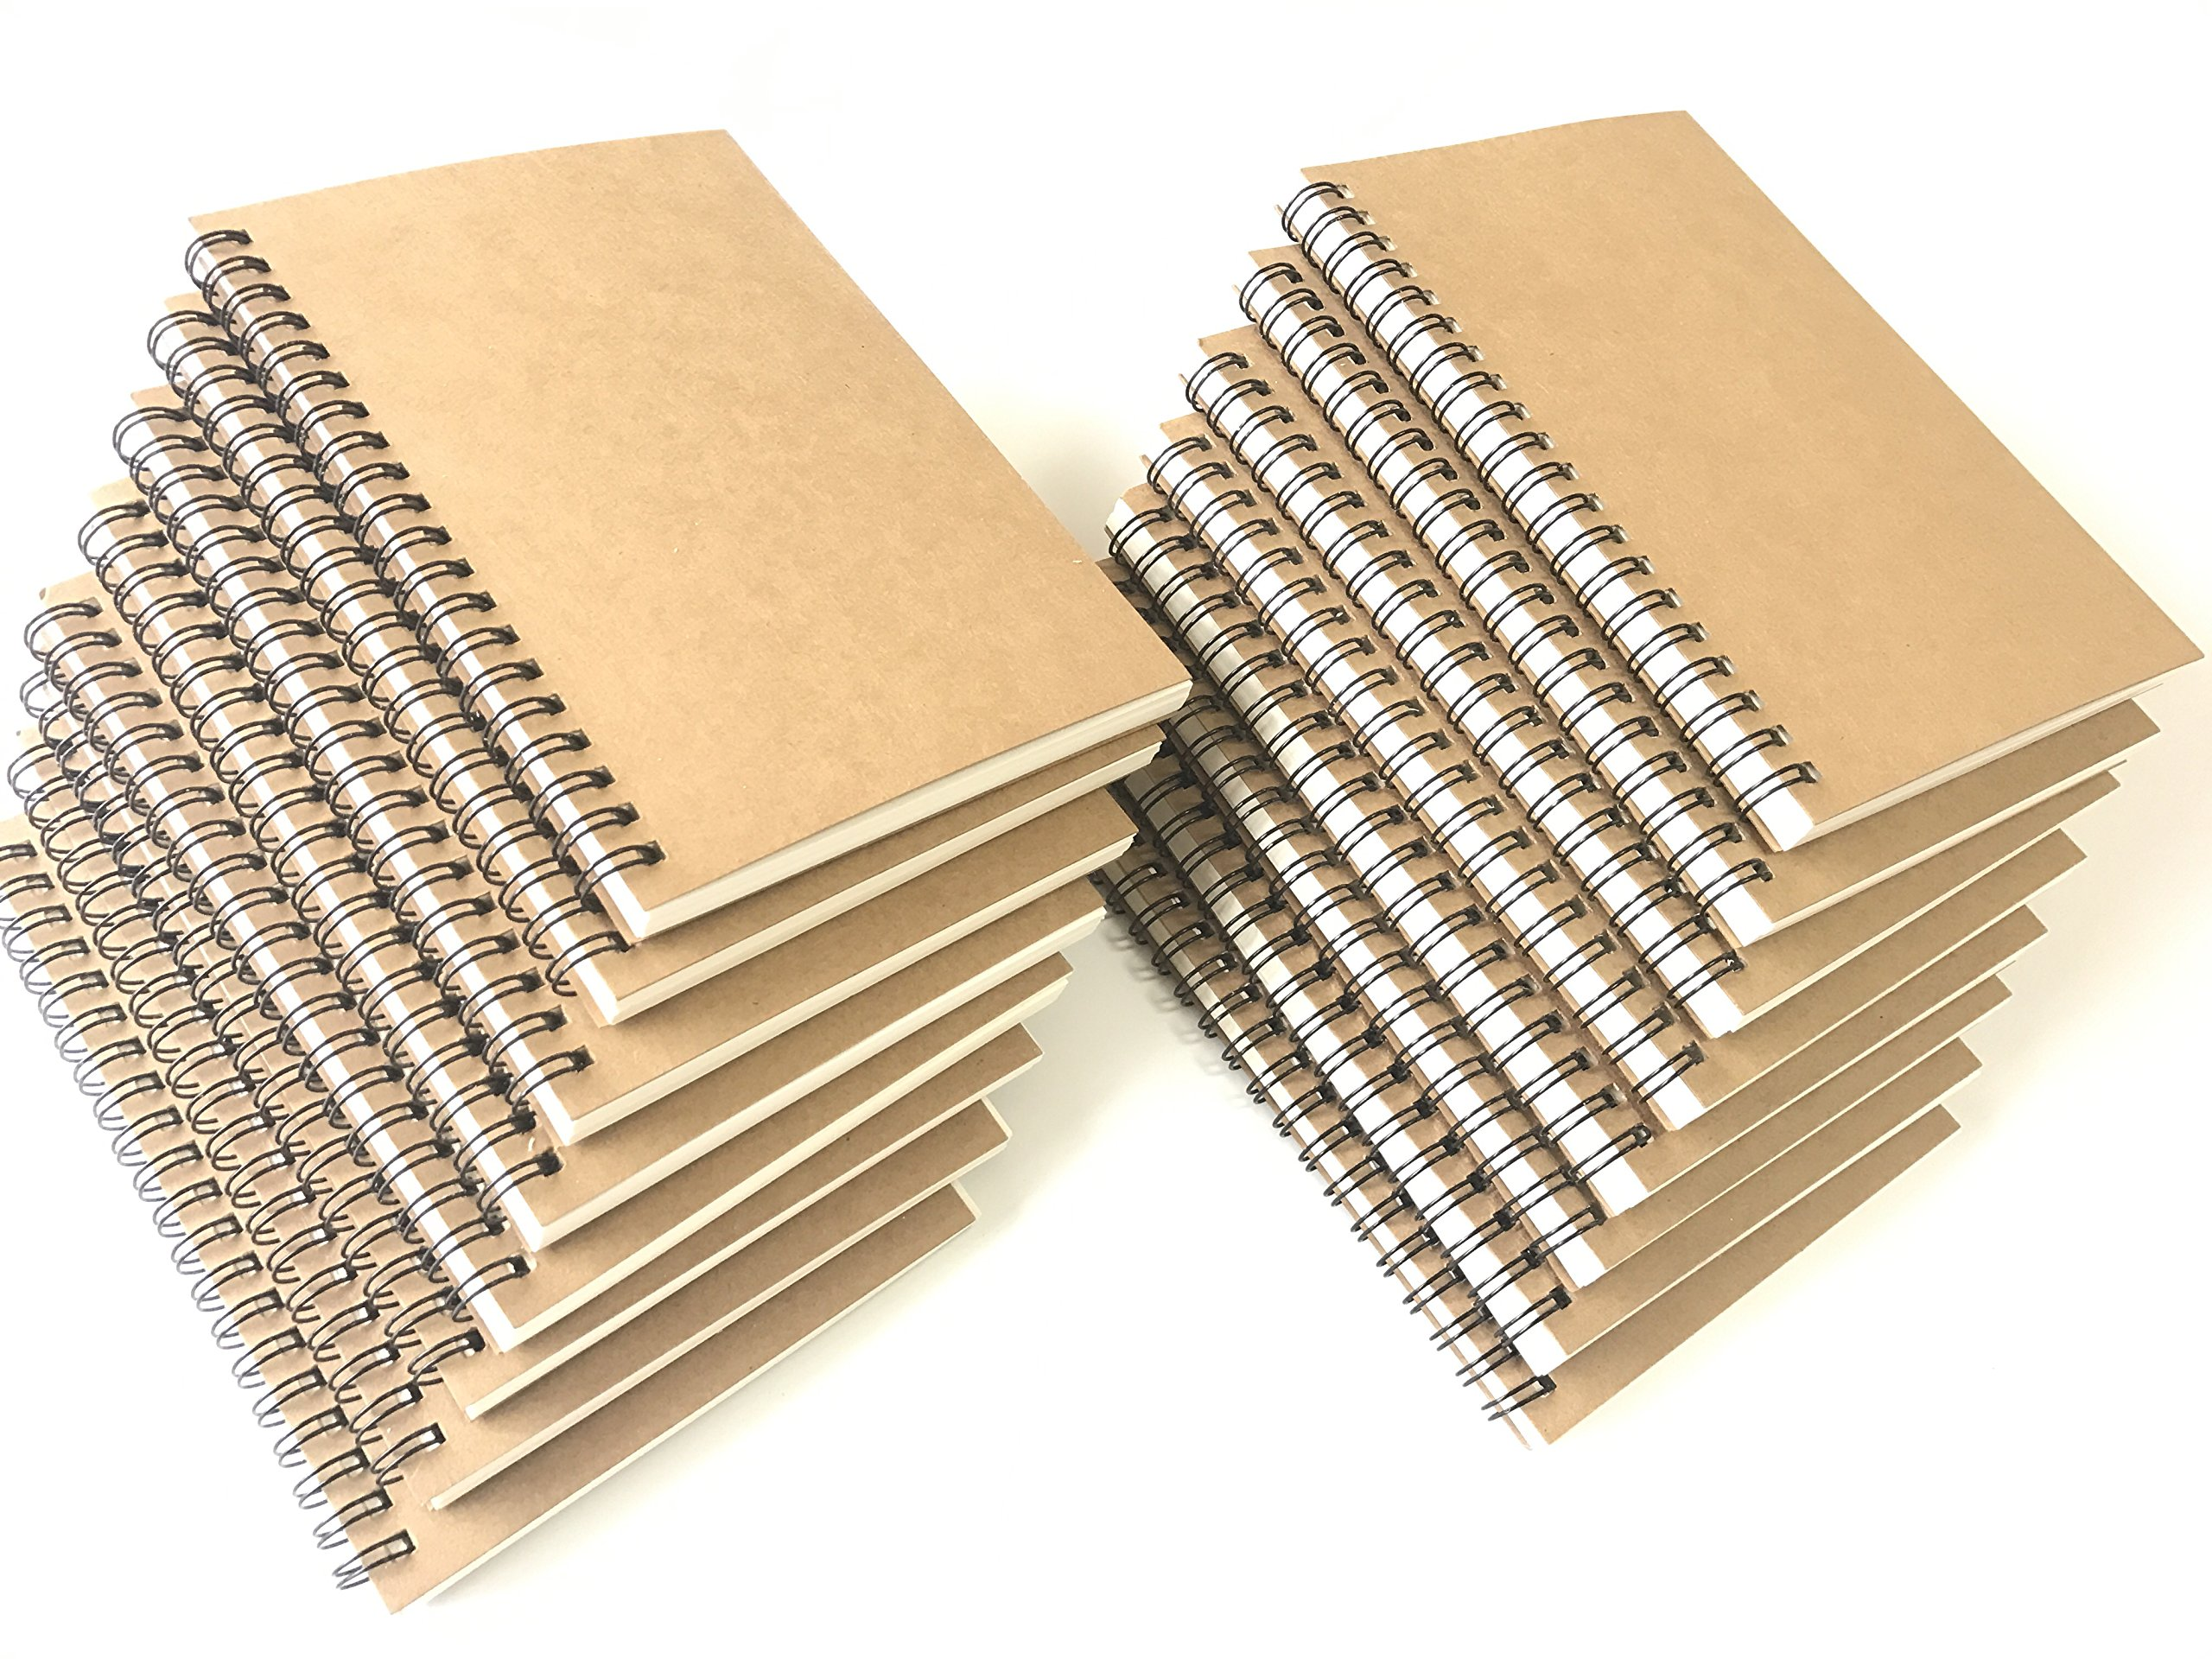 VEEPPO 16 Pack Bulk Notebooks and Journals Spiral Notebooks 4.7x7inch Small Sketch Books Mini Sketch Note Pads Kraft Cardboard Cover Thick Blank White Paper (White Page-Pack of 16) by VEEPPO